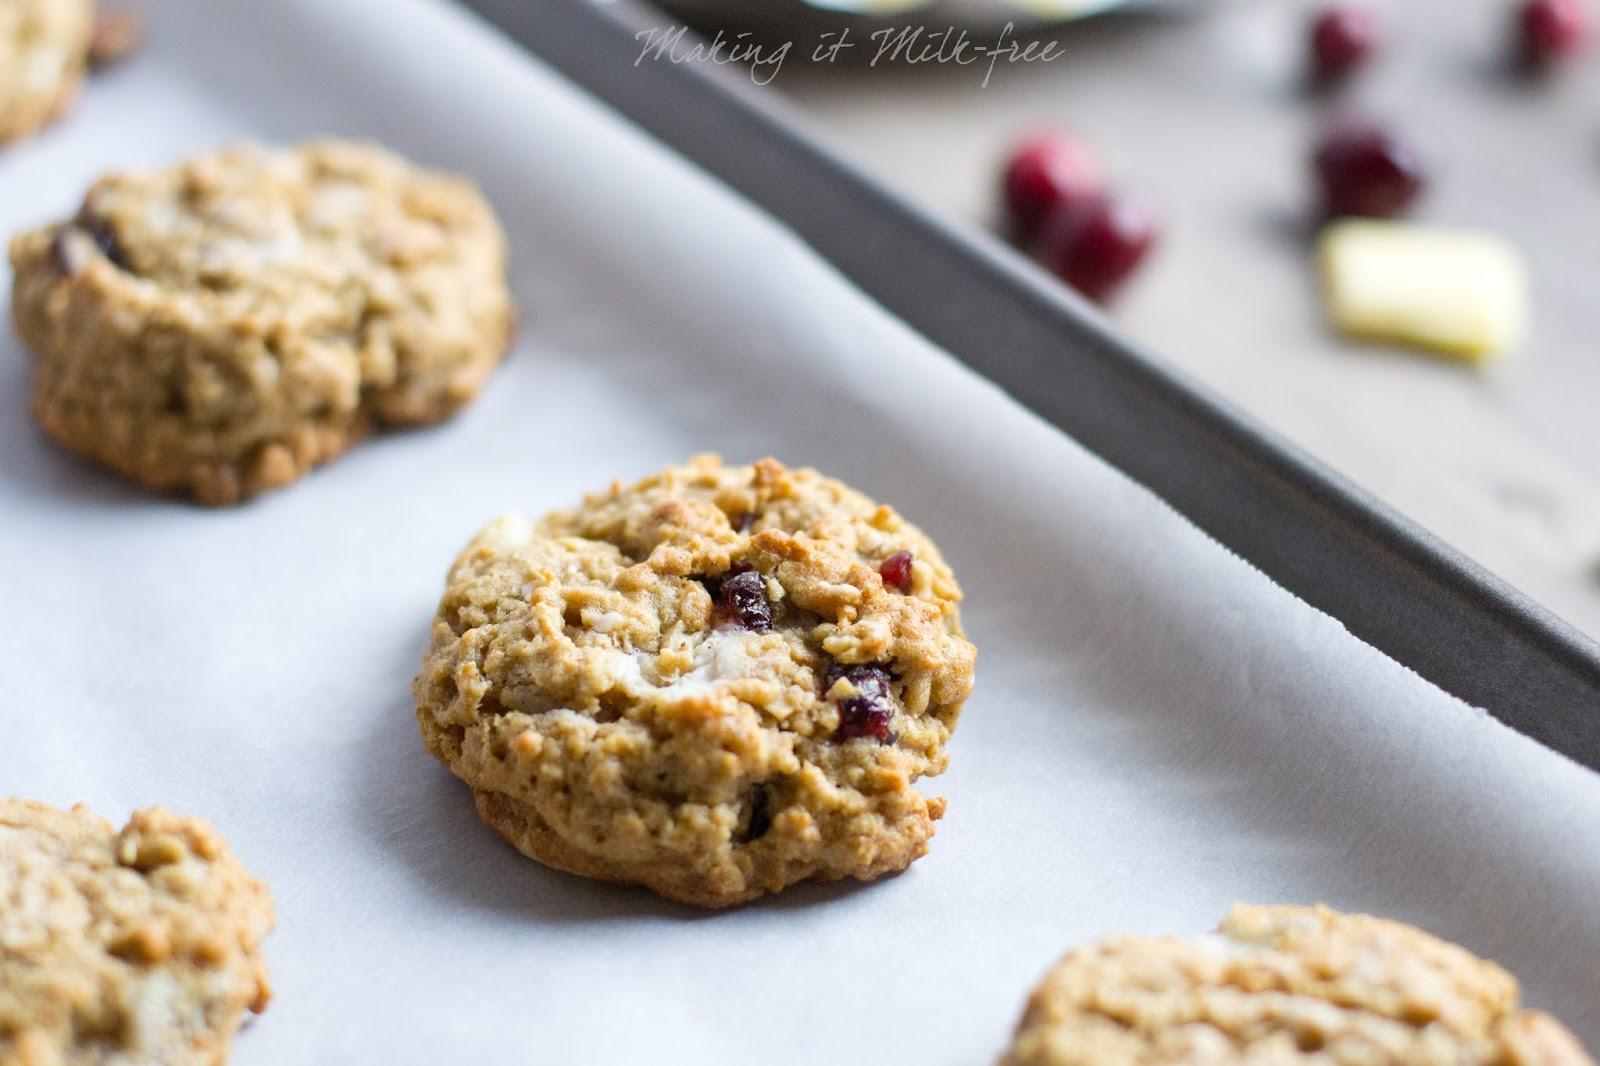 Cranberry Bliss Oatmeal Cookies {dairy + gluten free} from Making it Milk-free